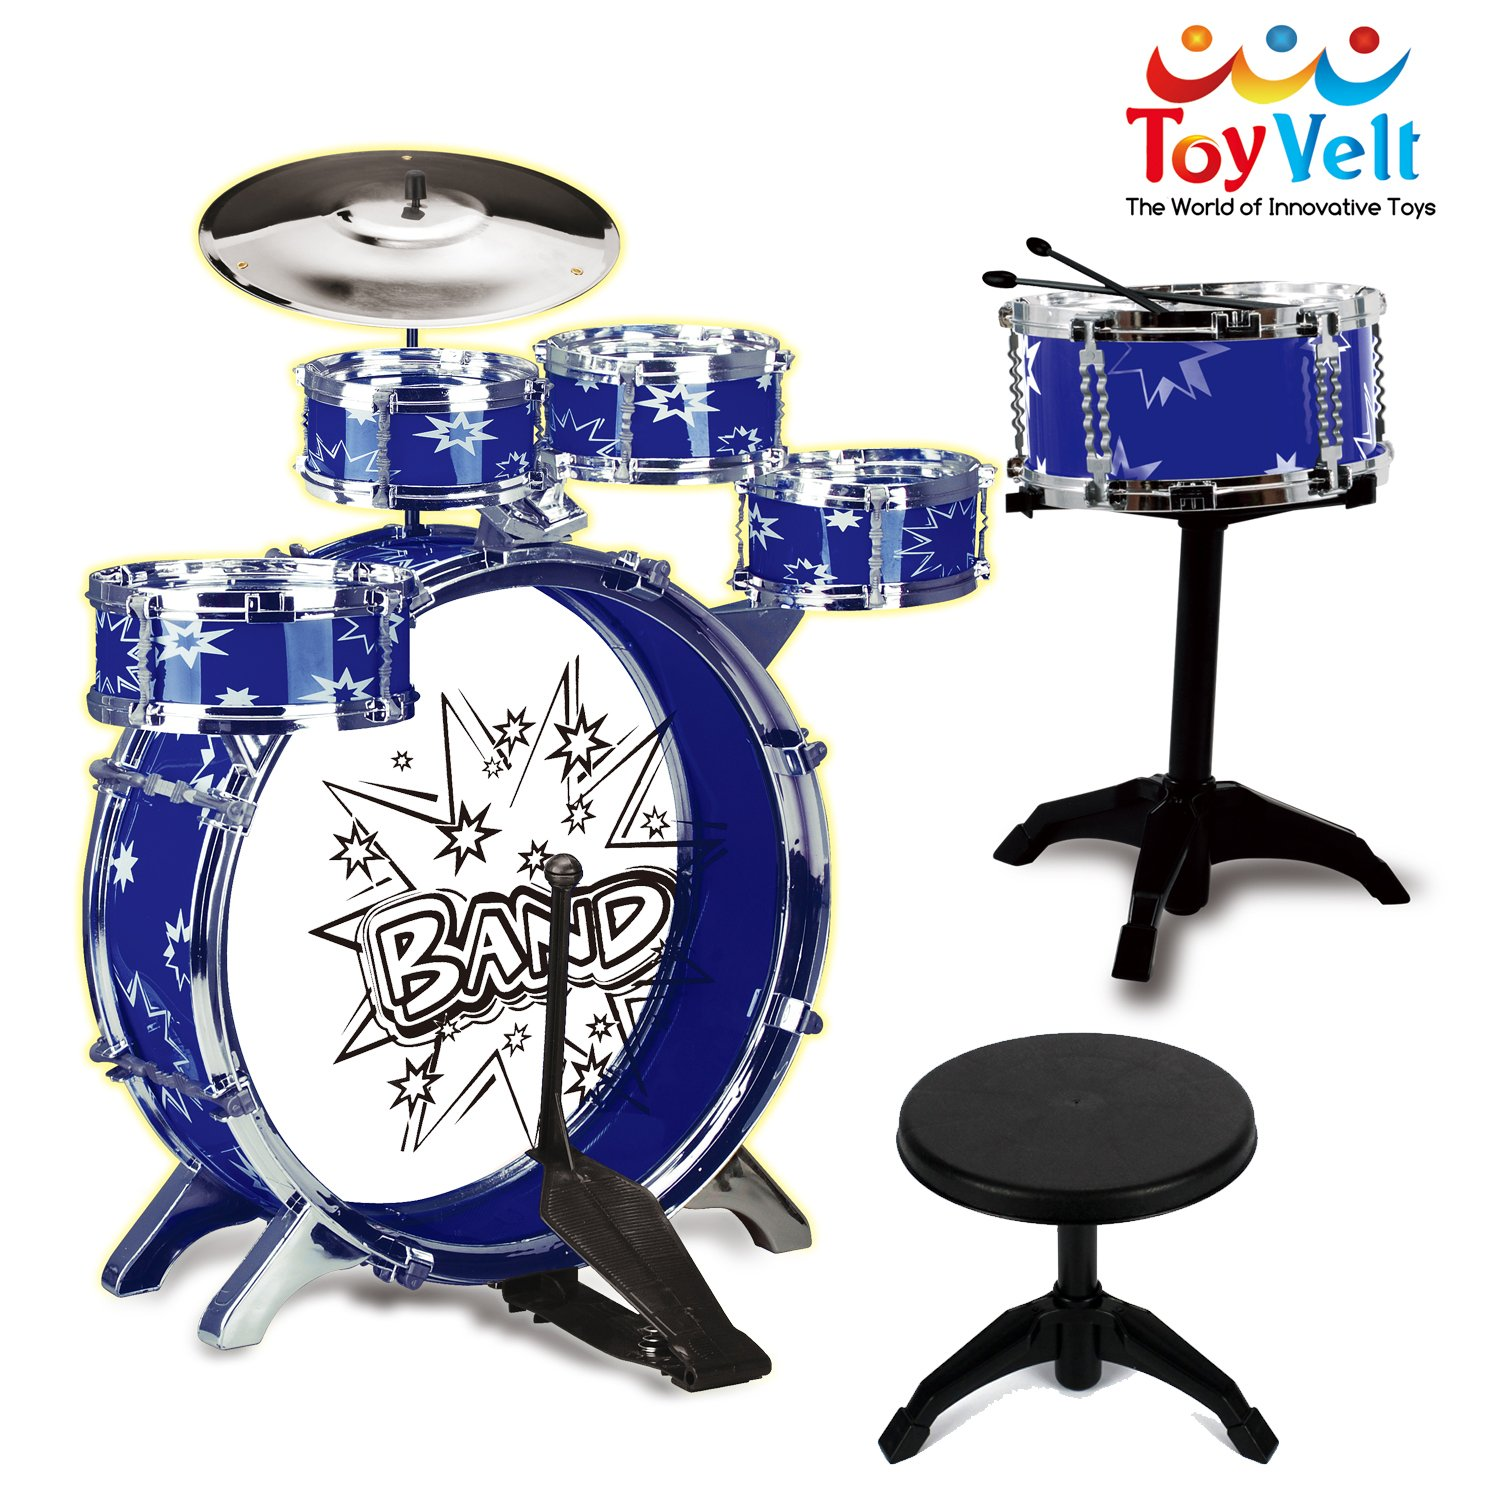 12 Piece Kids Jazz Drum Set – 6 Drums, Cymbal, Chair, Kick Pedal, 2 Drumsticks, Stool – Little Rockstar Kit to Stimulating Children's Creativity, - Ideal Gift Toy for Kids, Teens, Boys & Girls ToyVelt PS75A Blue-Toyvelt